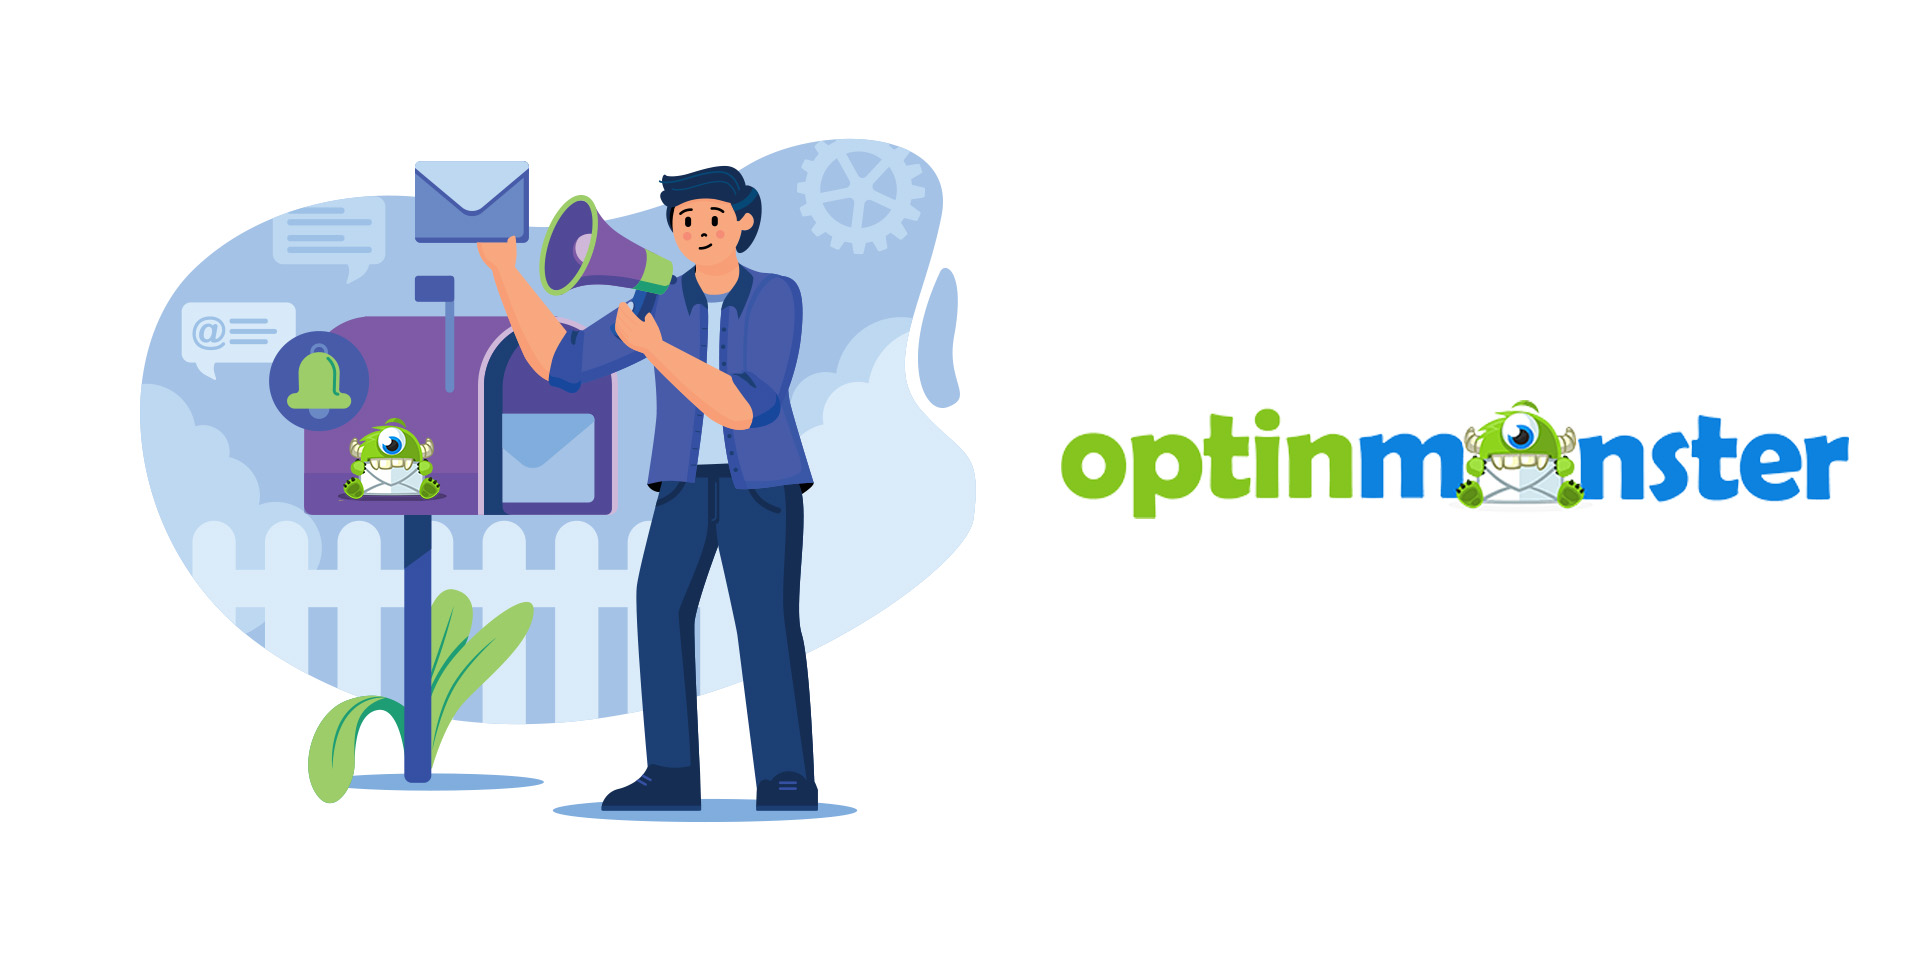 Using OptinMonster to drive engagement and sign up users to blogs